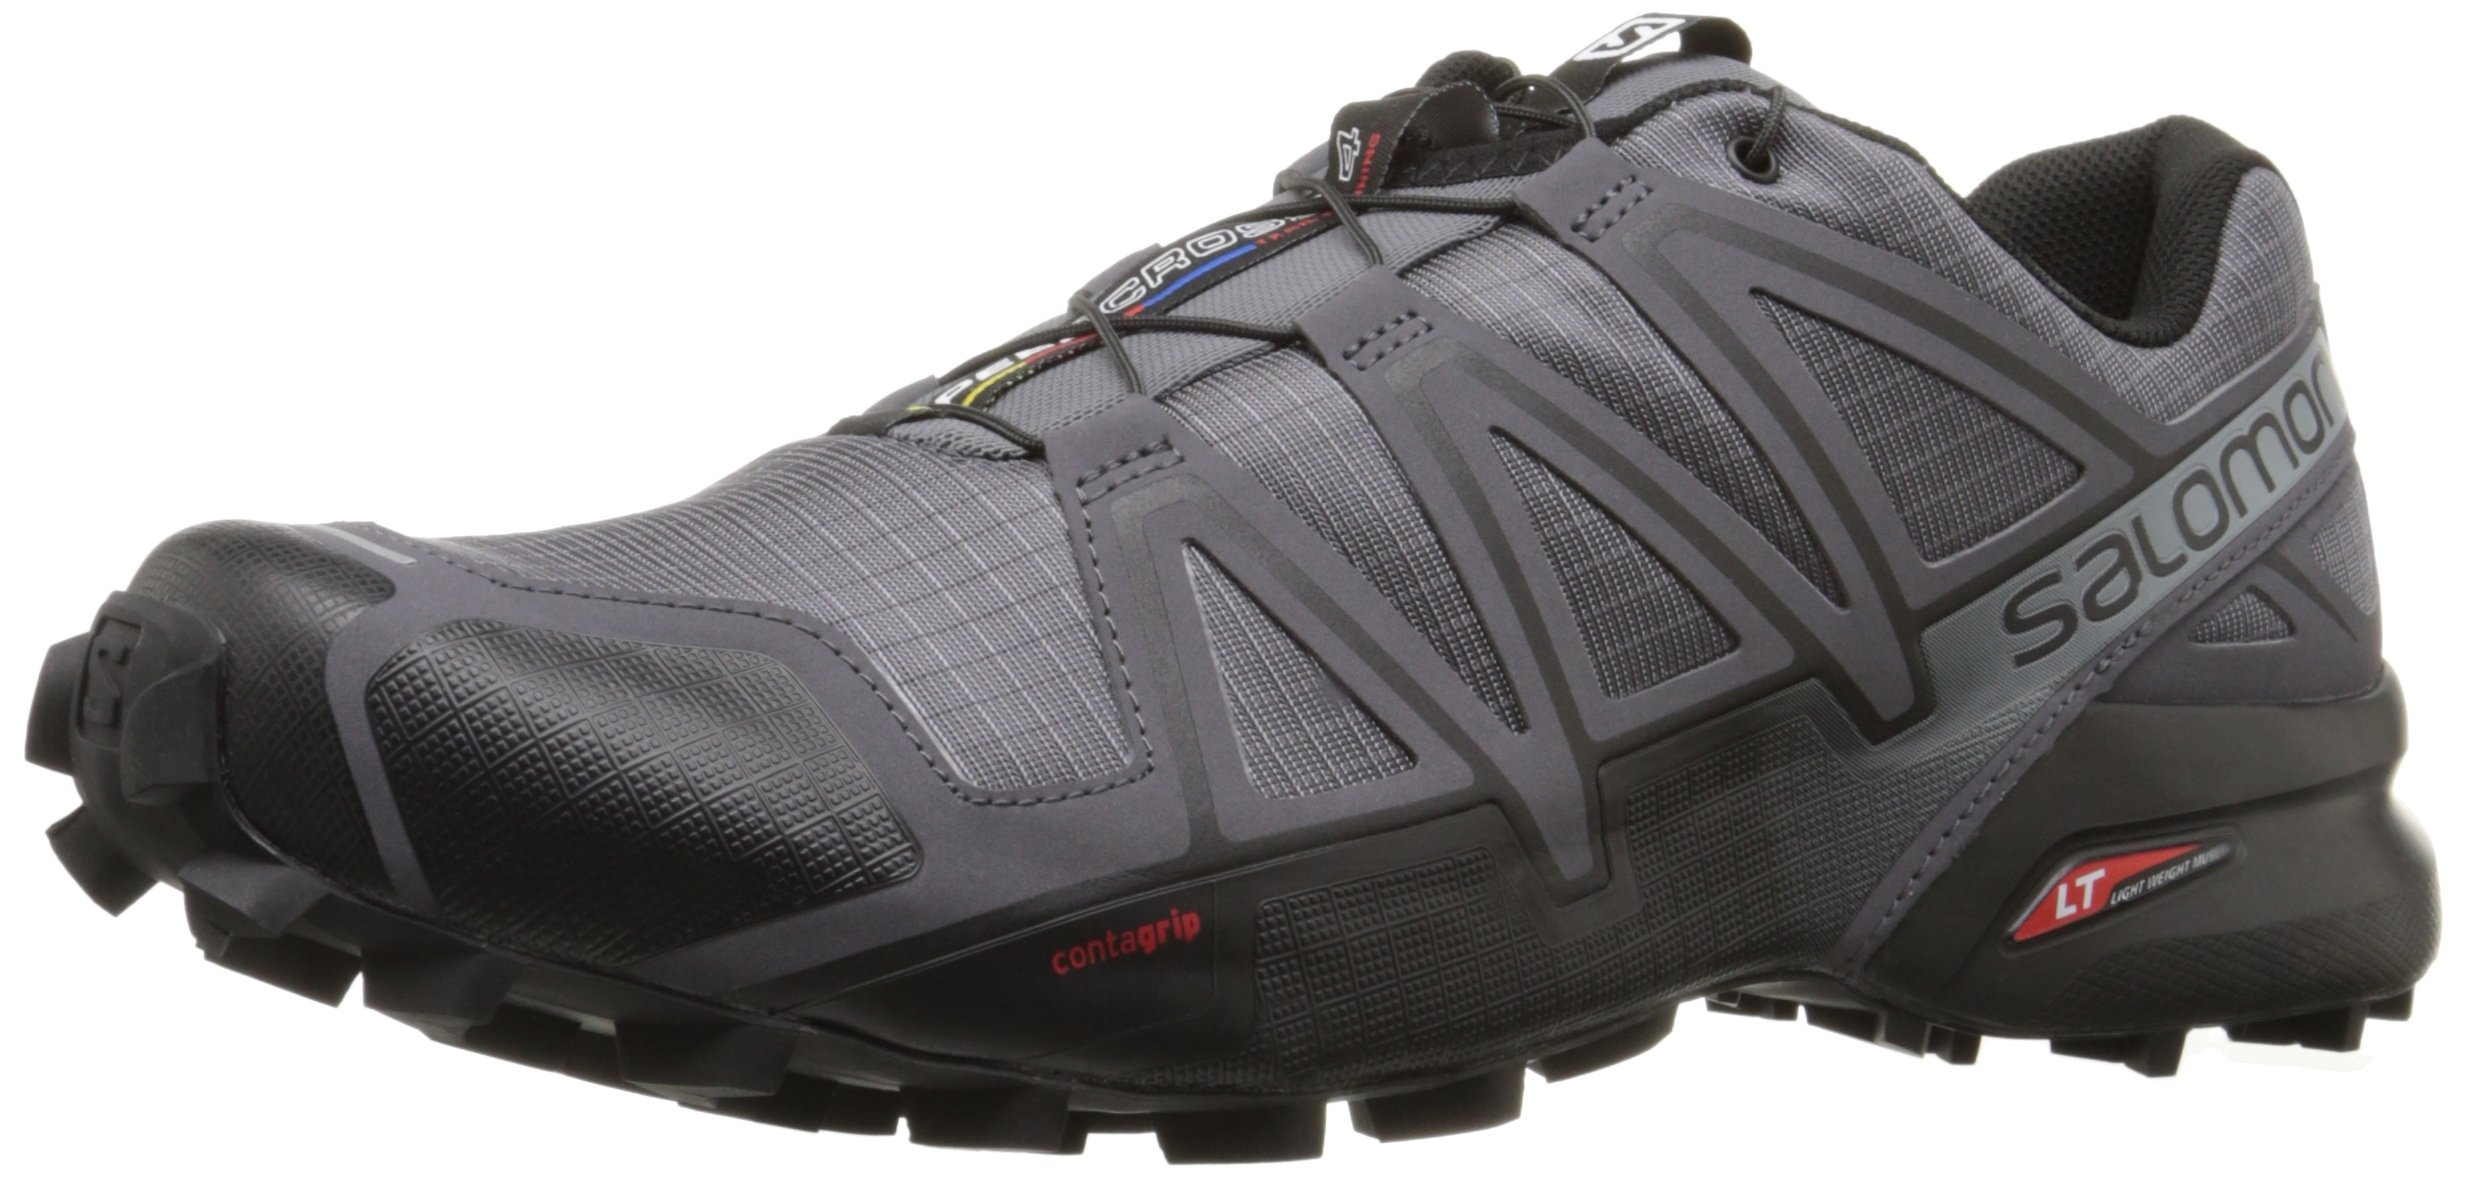 Salomon Men's Speedcross 4 Trail Runner, Dark Cloud, 8 M US by Salomon